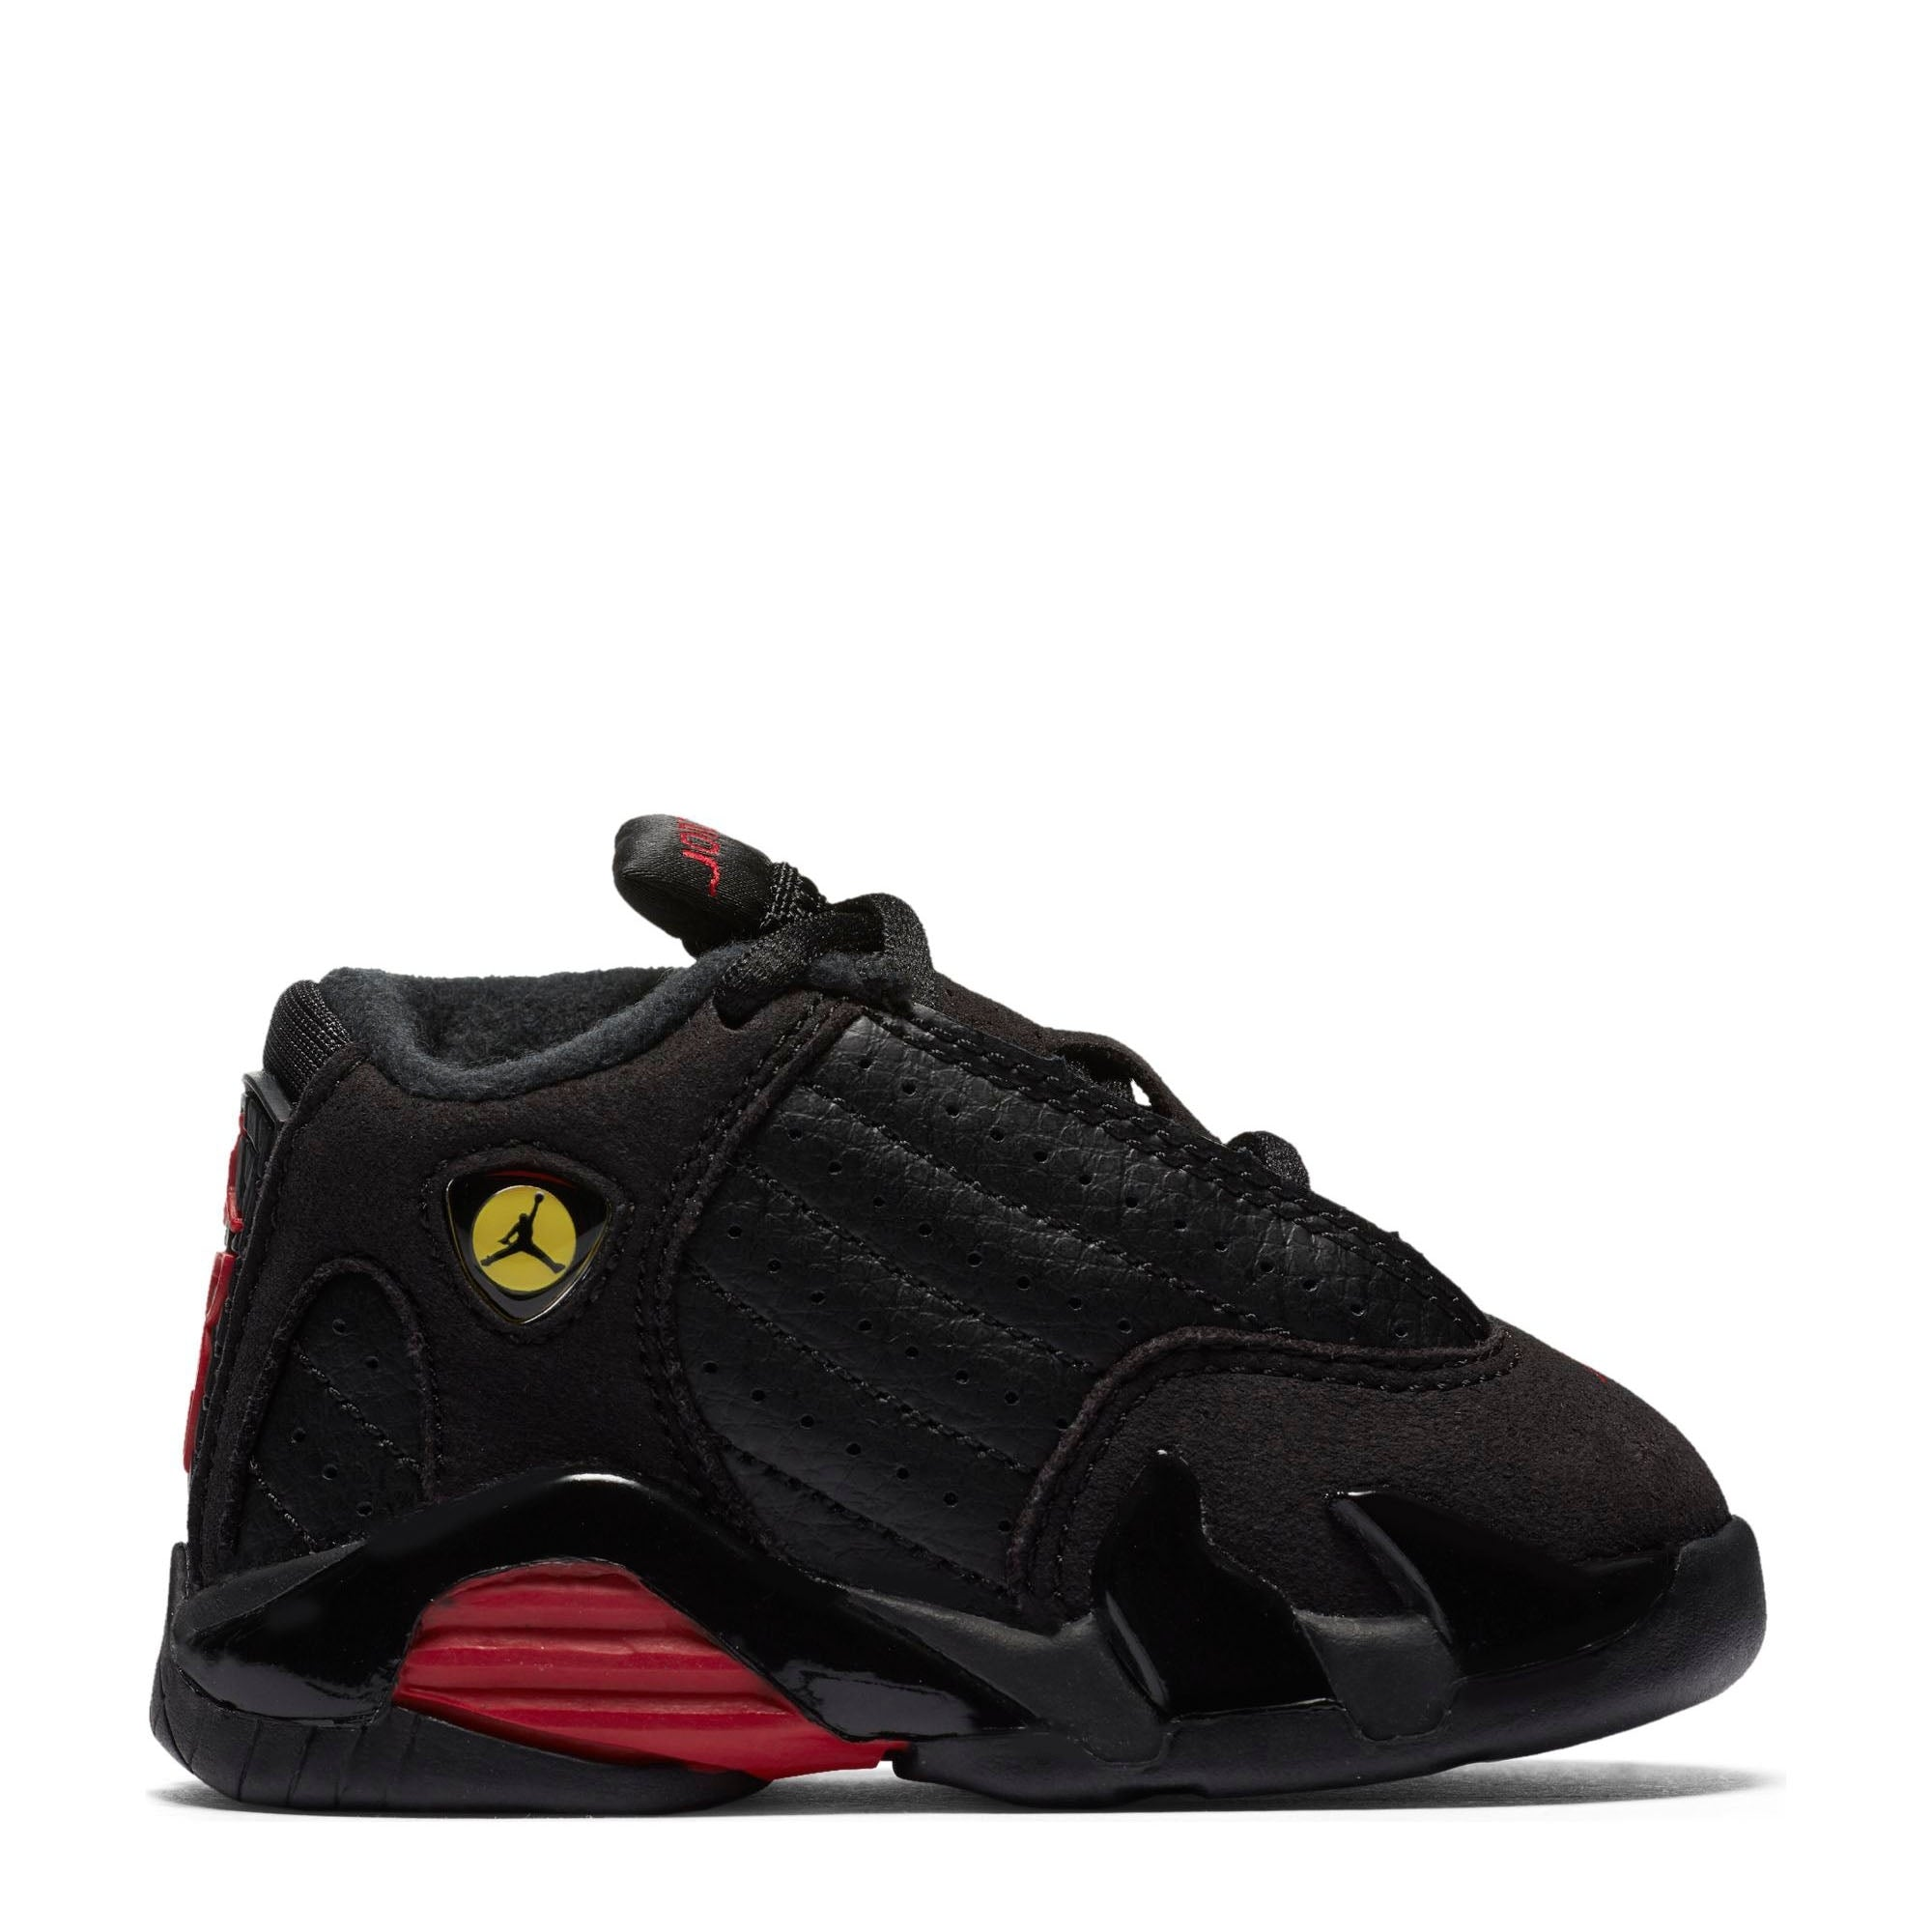 1c39c5a8097876 Jordan Footwear - The Closet Inc.